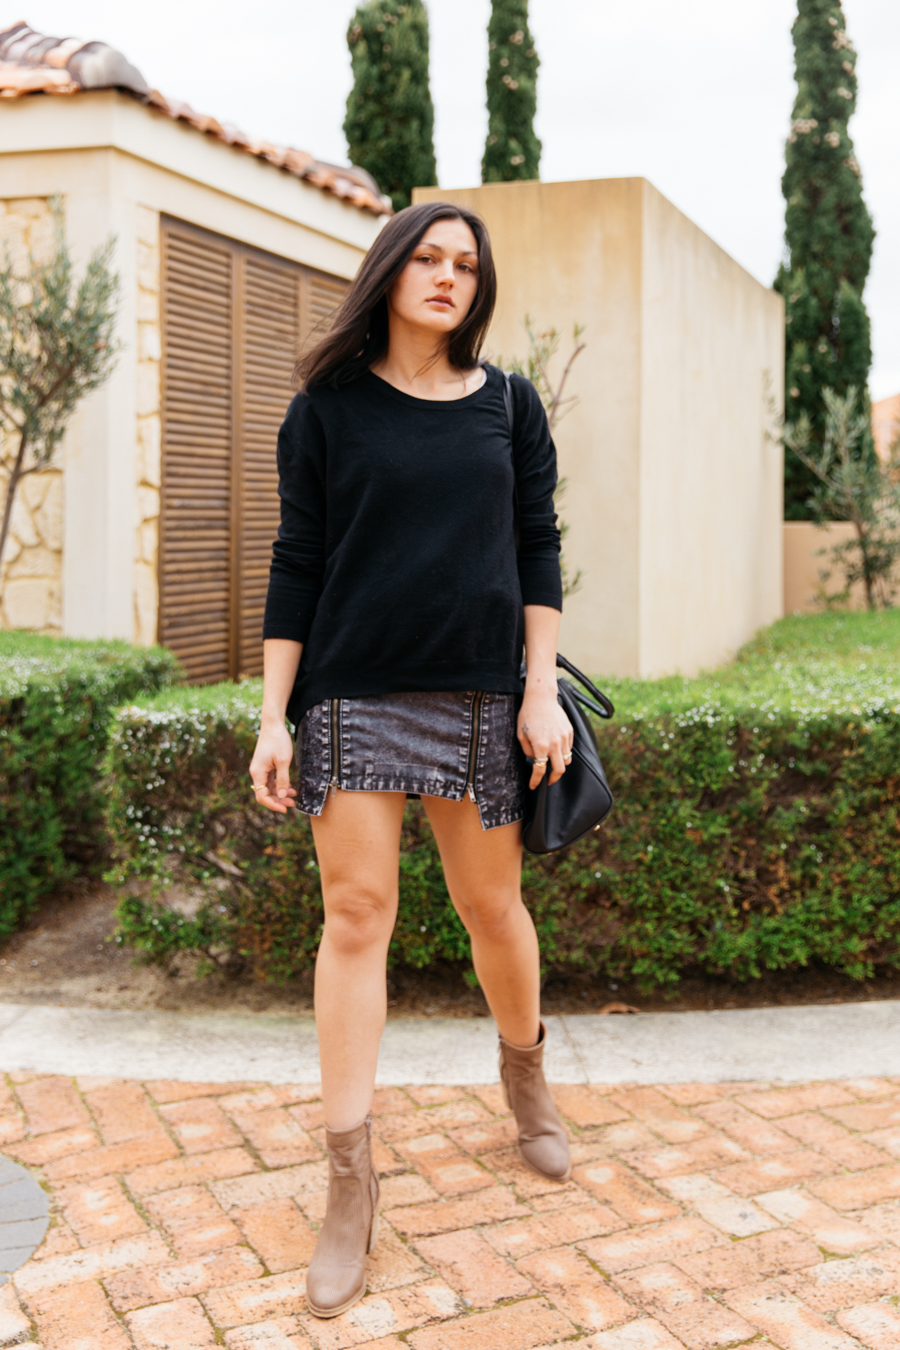 Autumn outfit with leather boots.